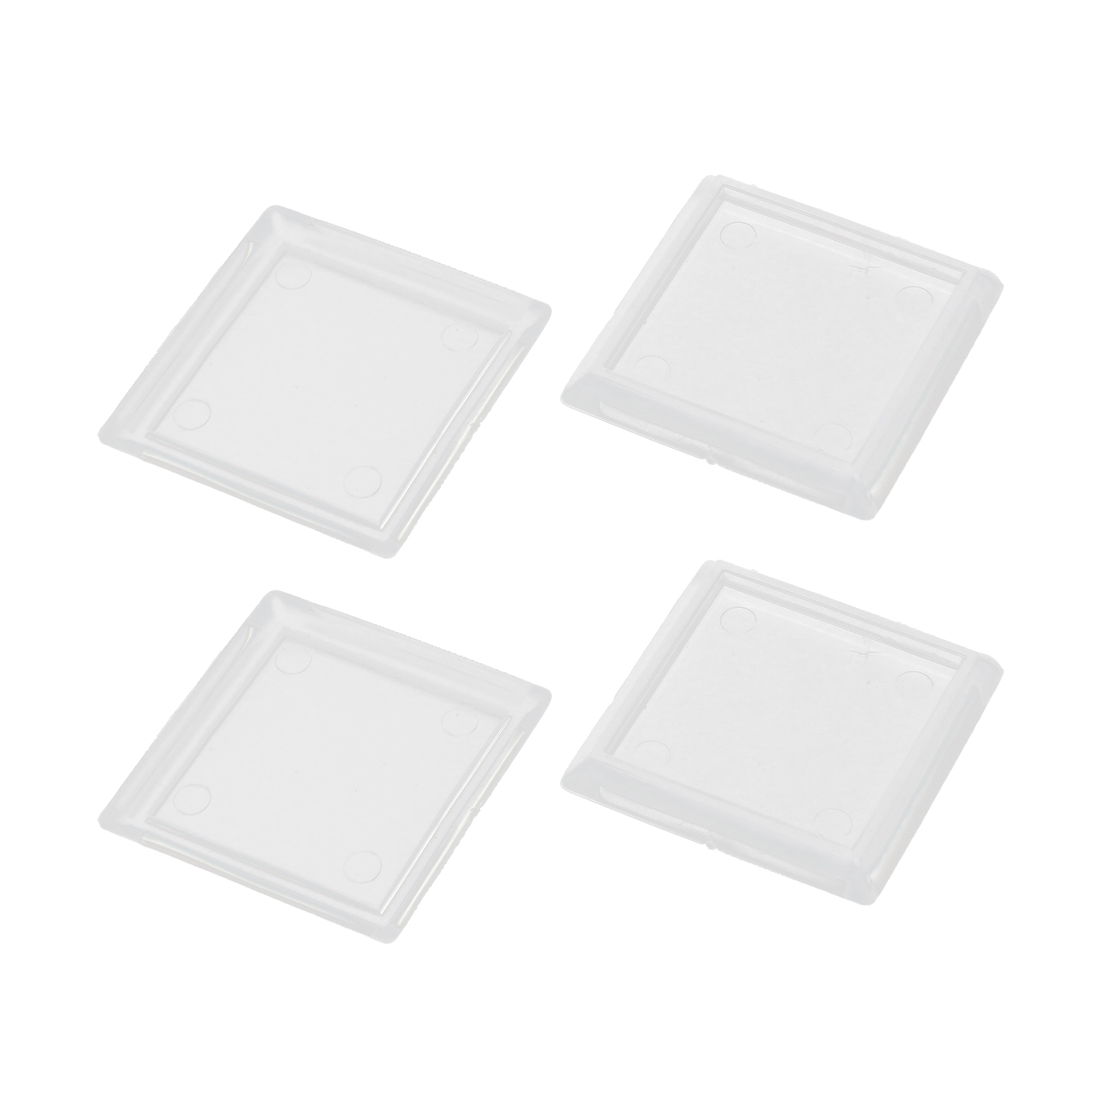 Furniture Chair Leg Square Clear Rubber Pads Floor Protector Cushion 4pcs